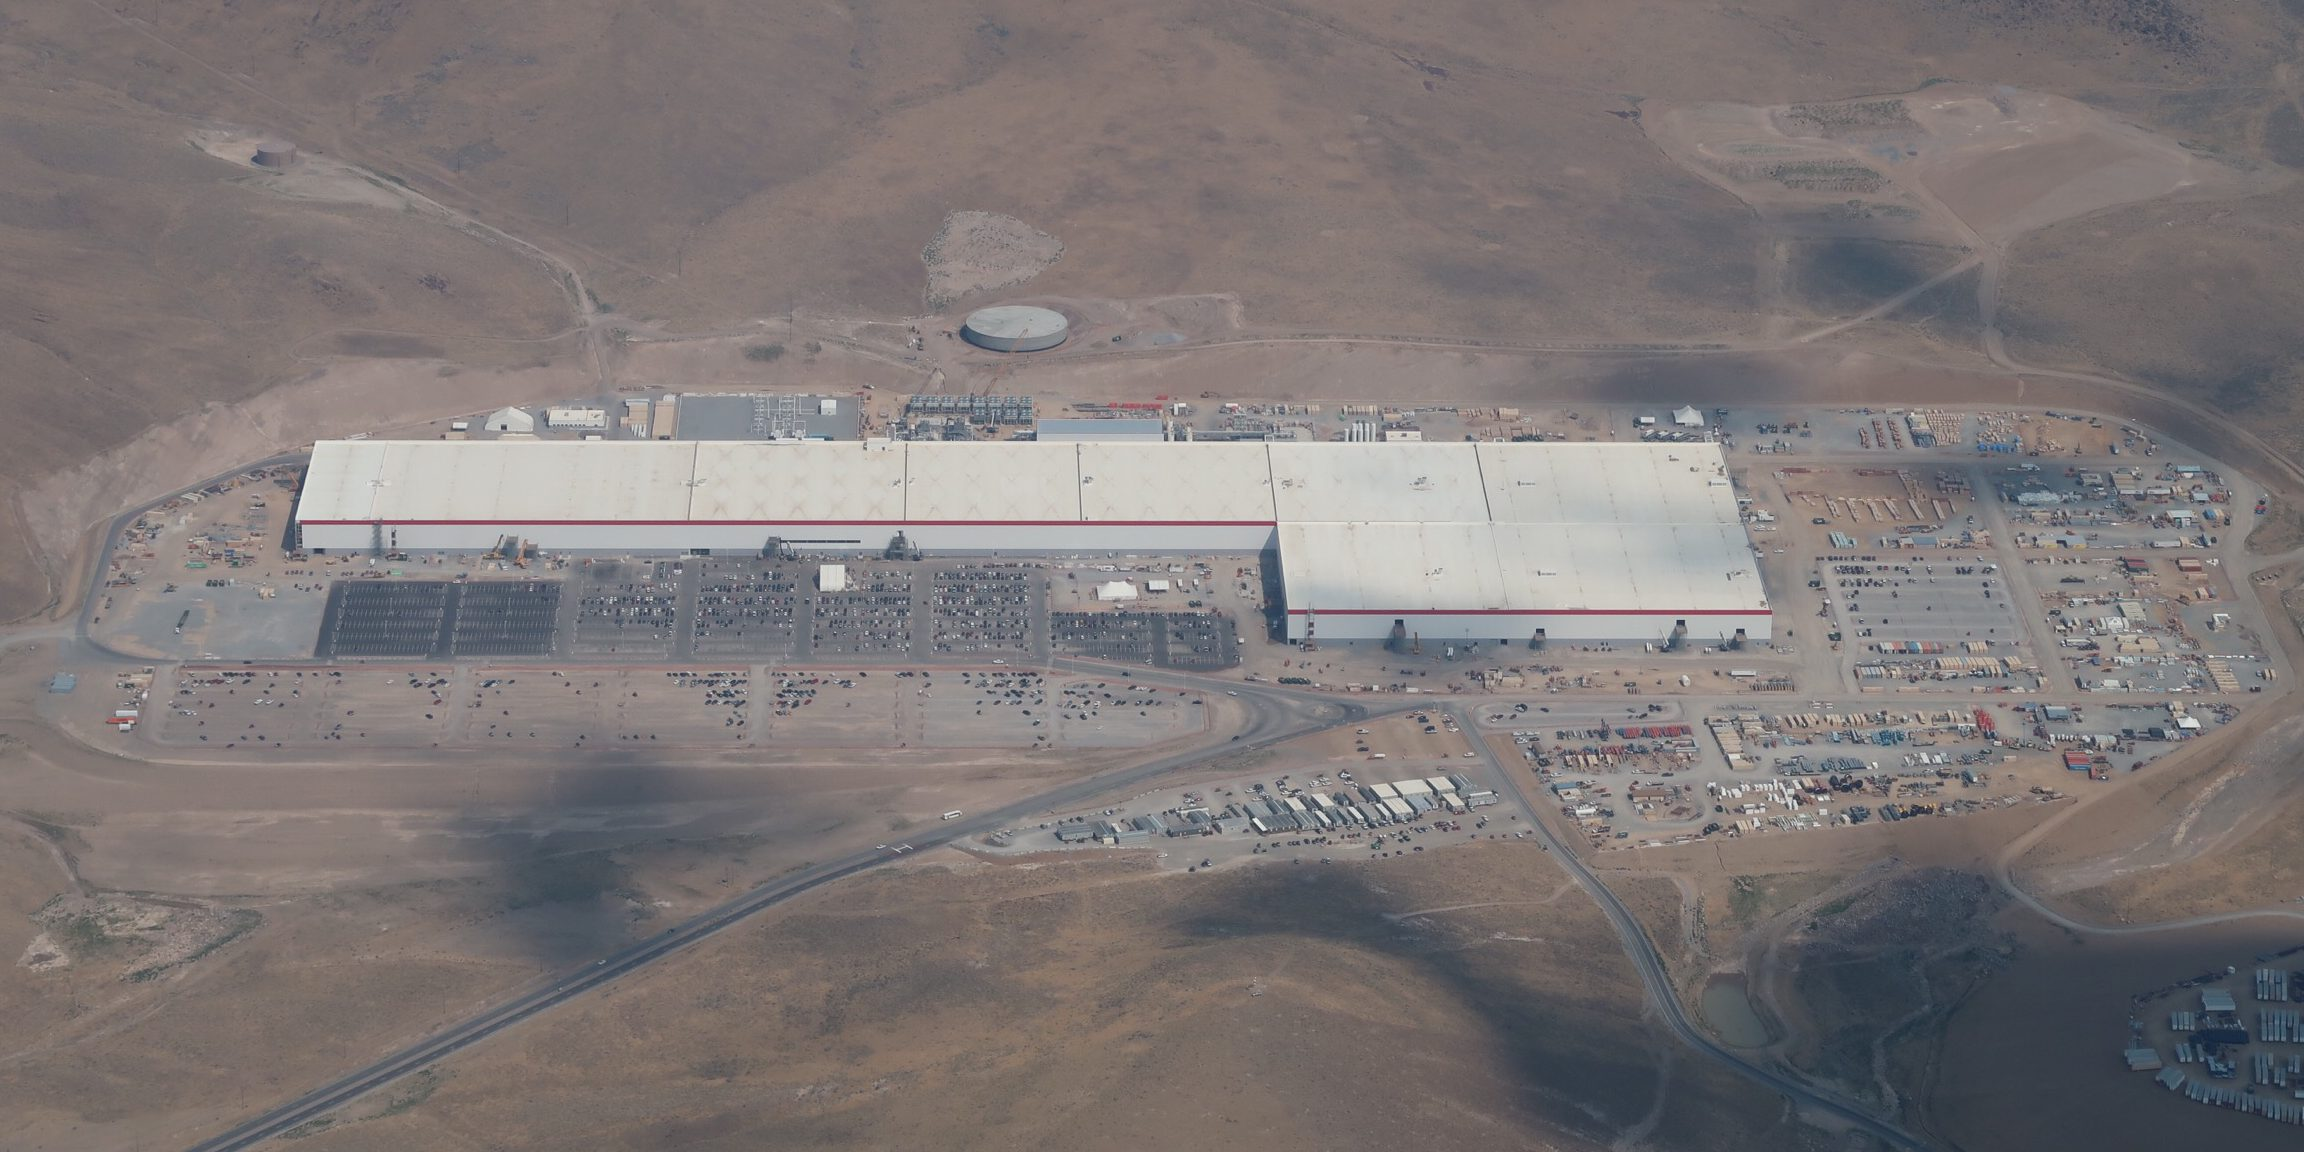 Panasonic plans to increase battery production at Tesla's Gigafactory 1 and other plants, says report